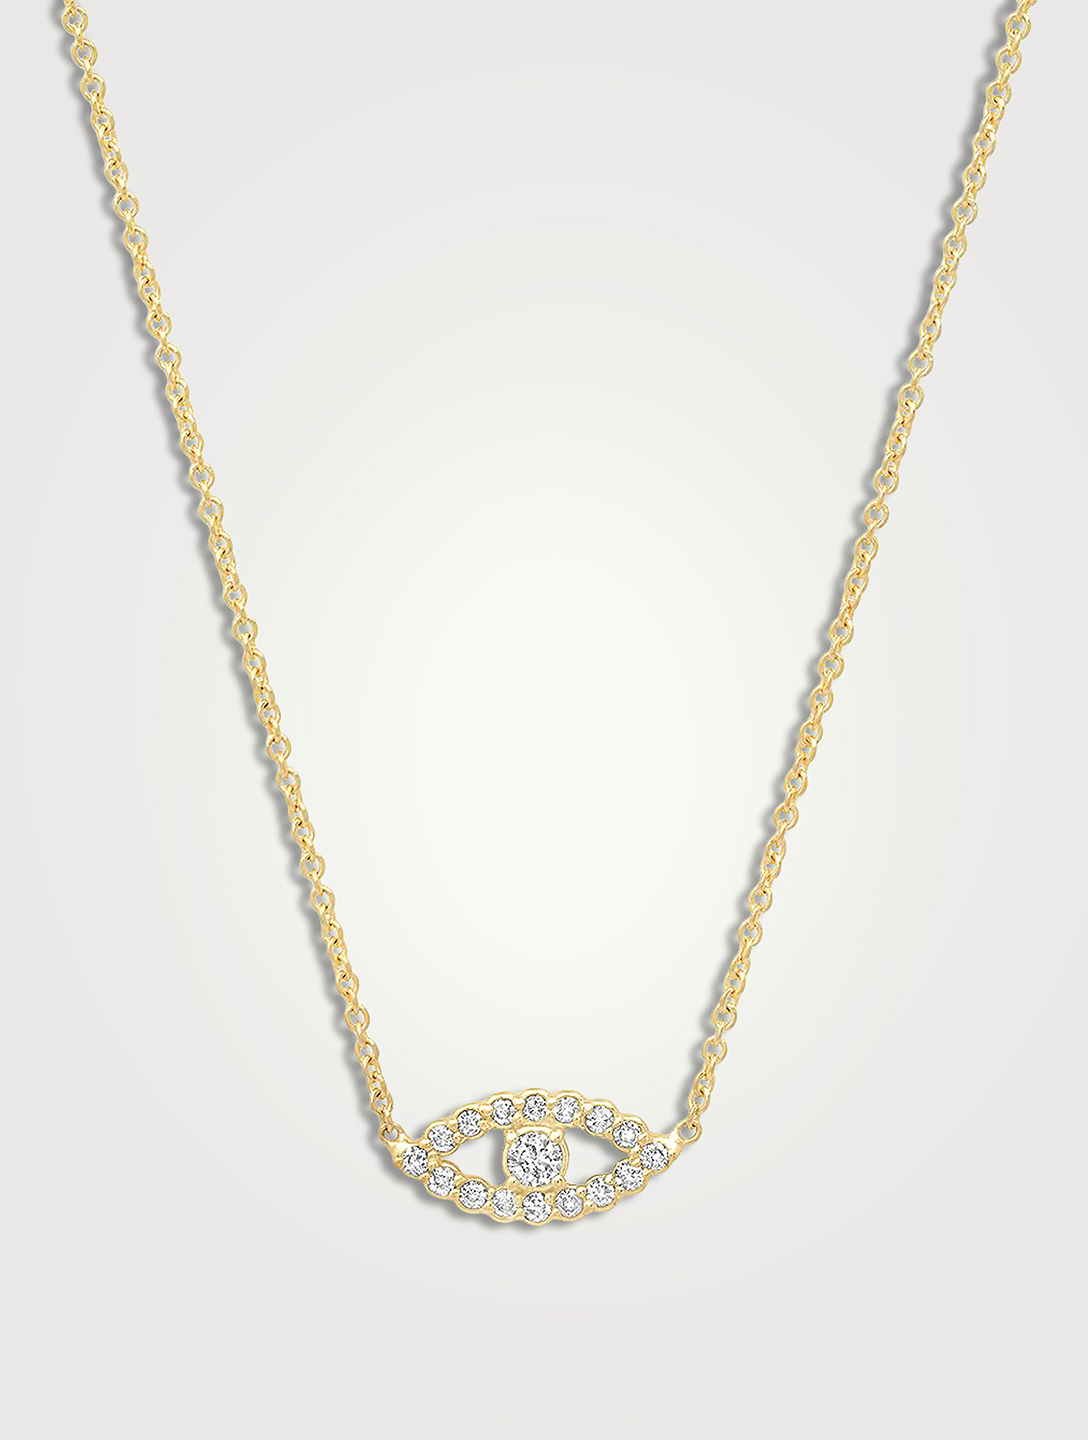 JENNIFER MEYER Mini 18K Gold Open Evil Eye Necklace With Diamonds Women's Metallic